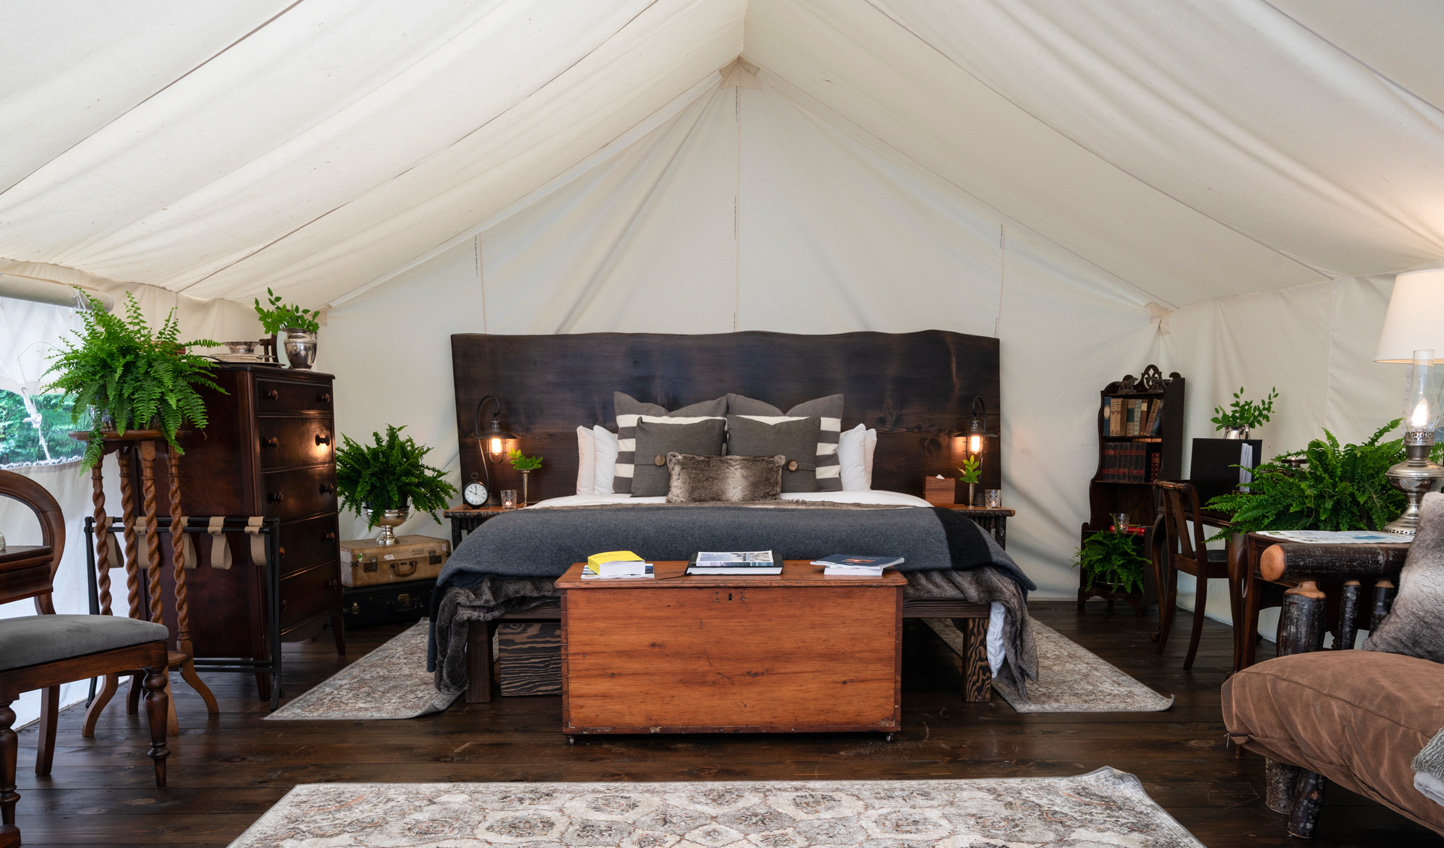 Cosy up in your rustic-chic tent